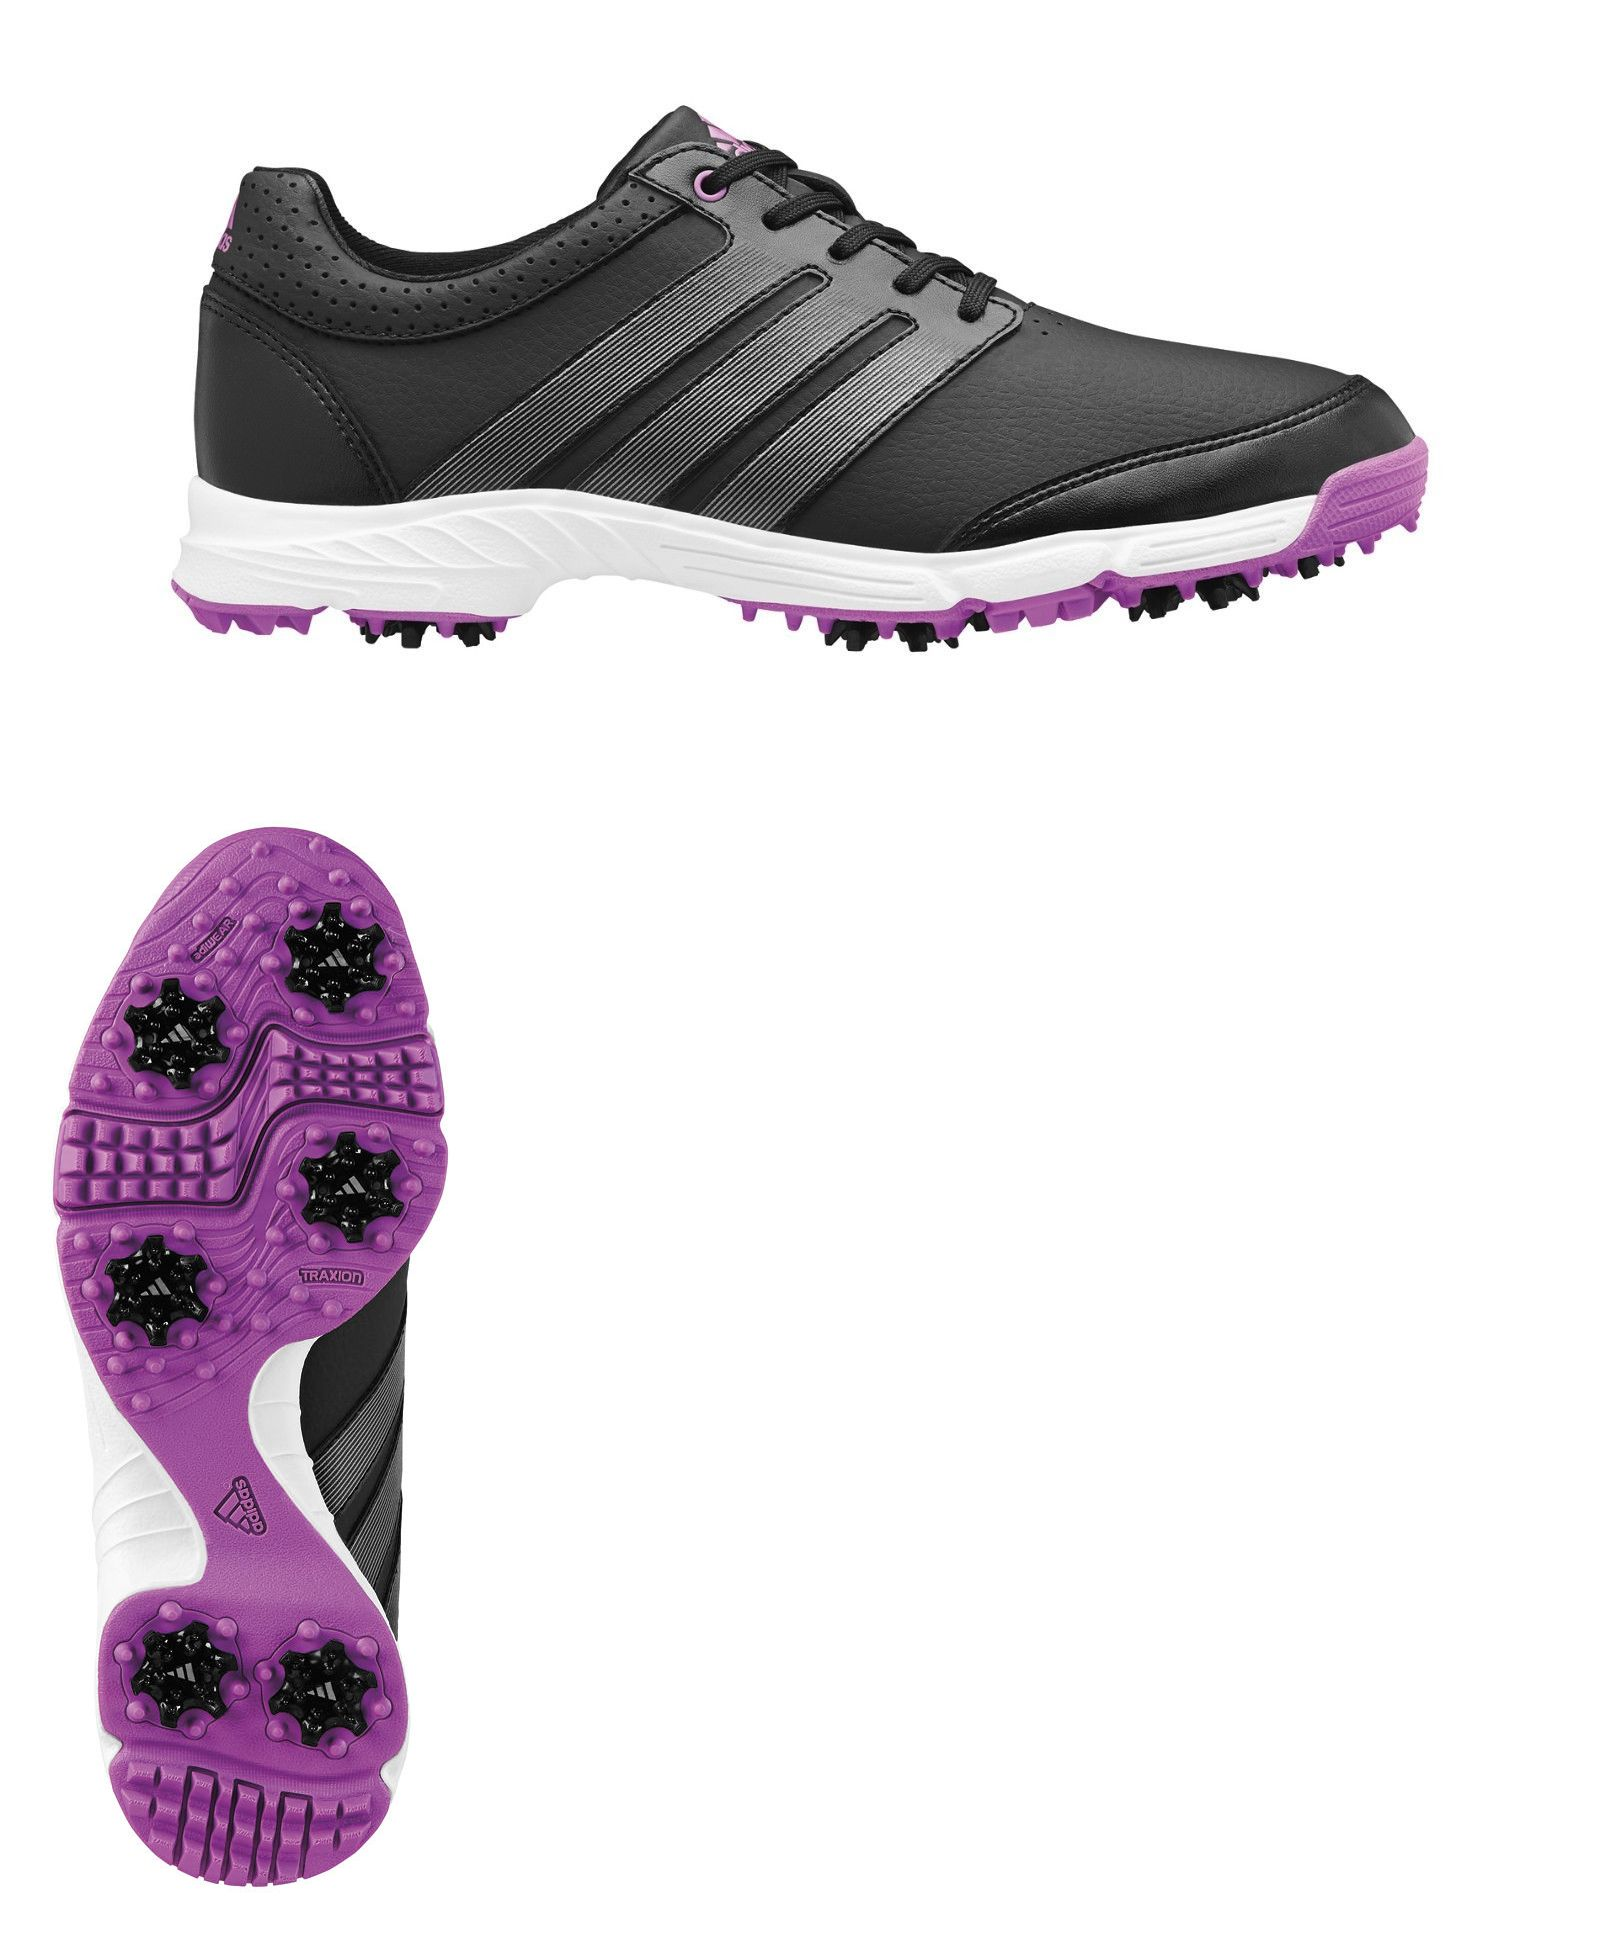 2825b44d8a0a Golf Shoes 181147  C O Womens Adidas Wresponsie Light Q47066 Blk Iron Pink  Golf Shoes 9